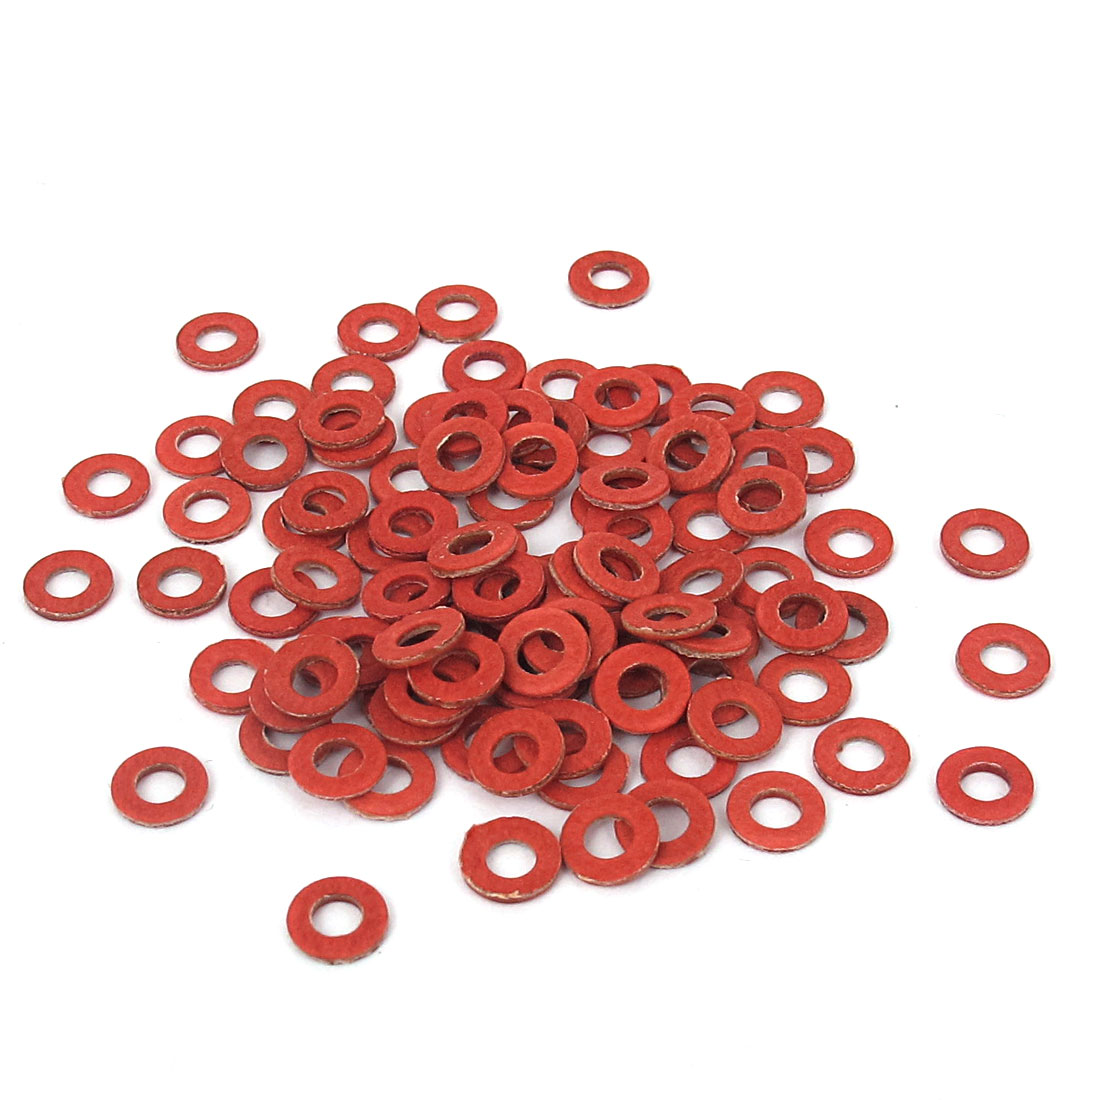 3mmx6mmx1mm Fiber Motherboard Insulating Pad Fastening Washers Red 100pcs